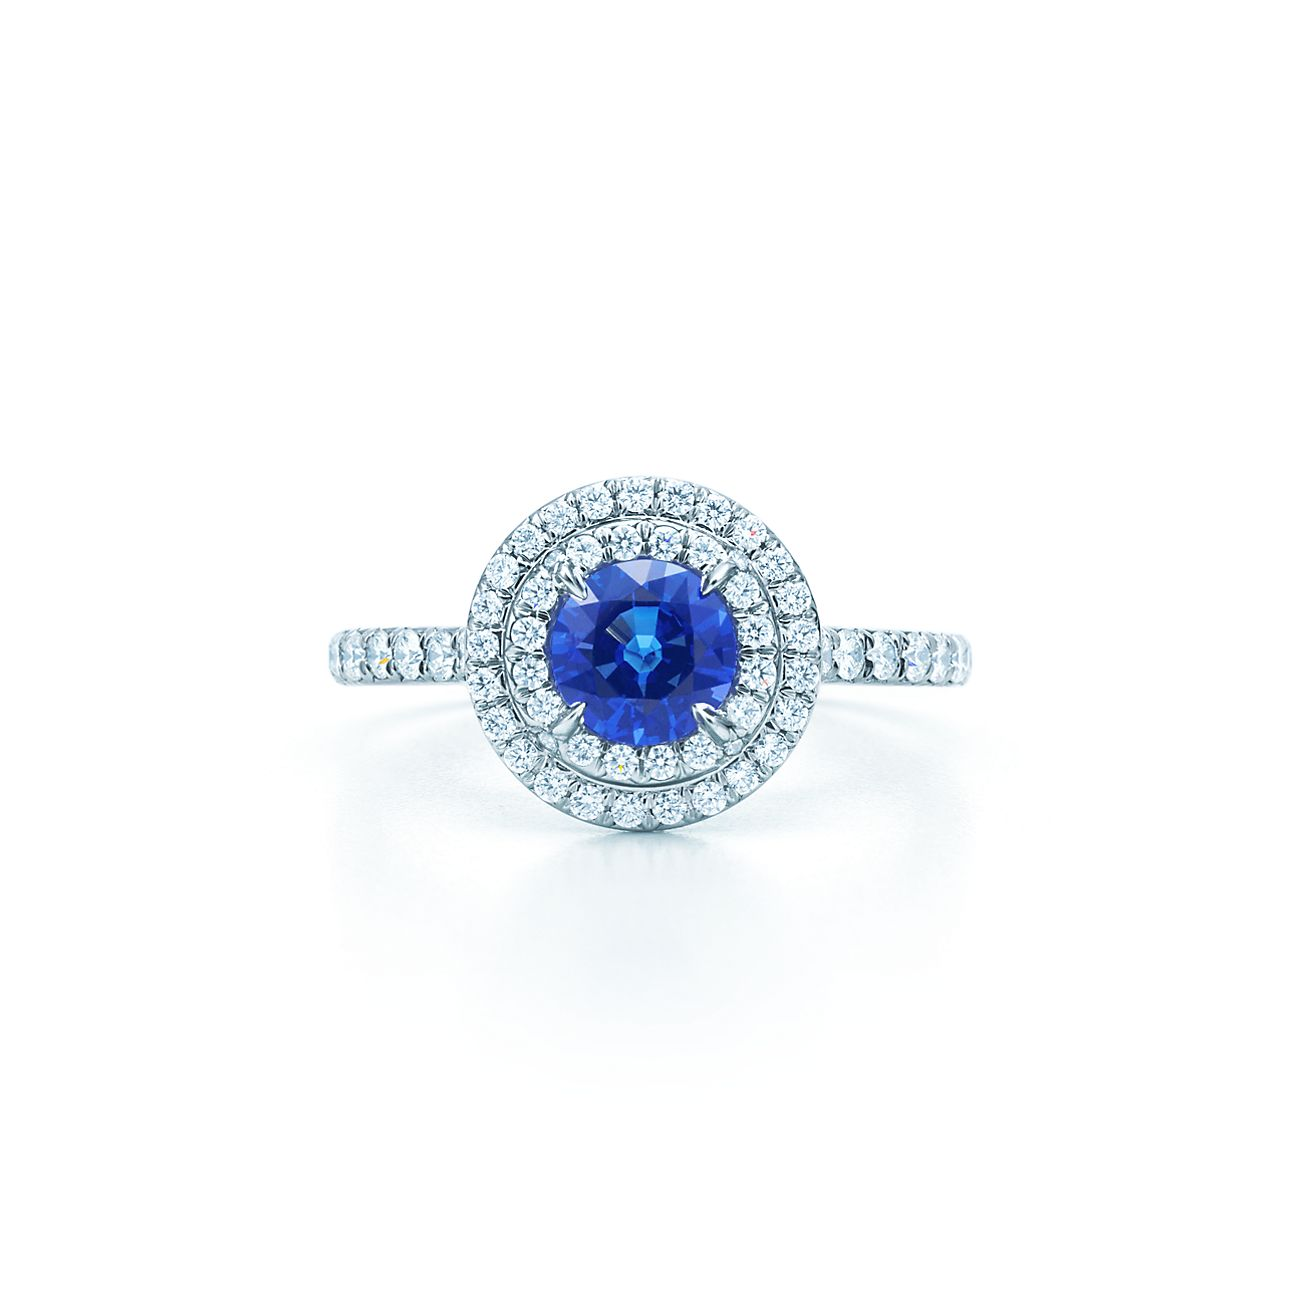 Tiffany Soleste ring in platinum with a 45carat sapphire and diamonds  Tiffany  Co